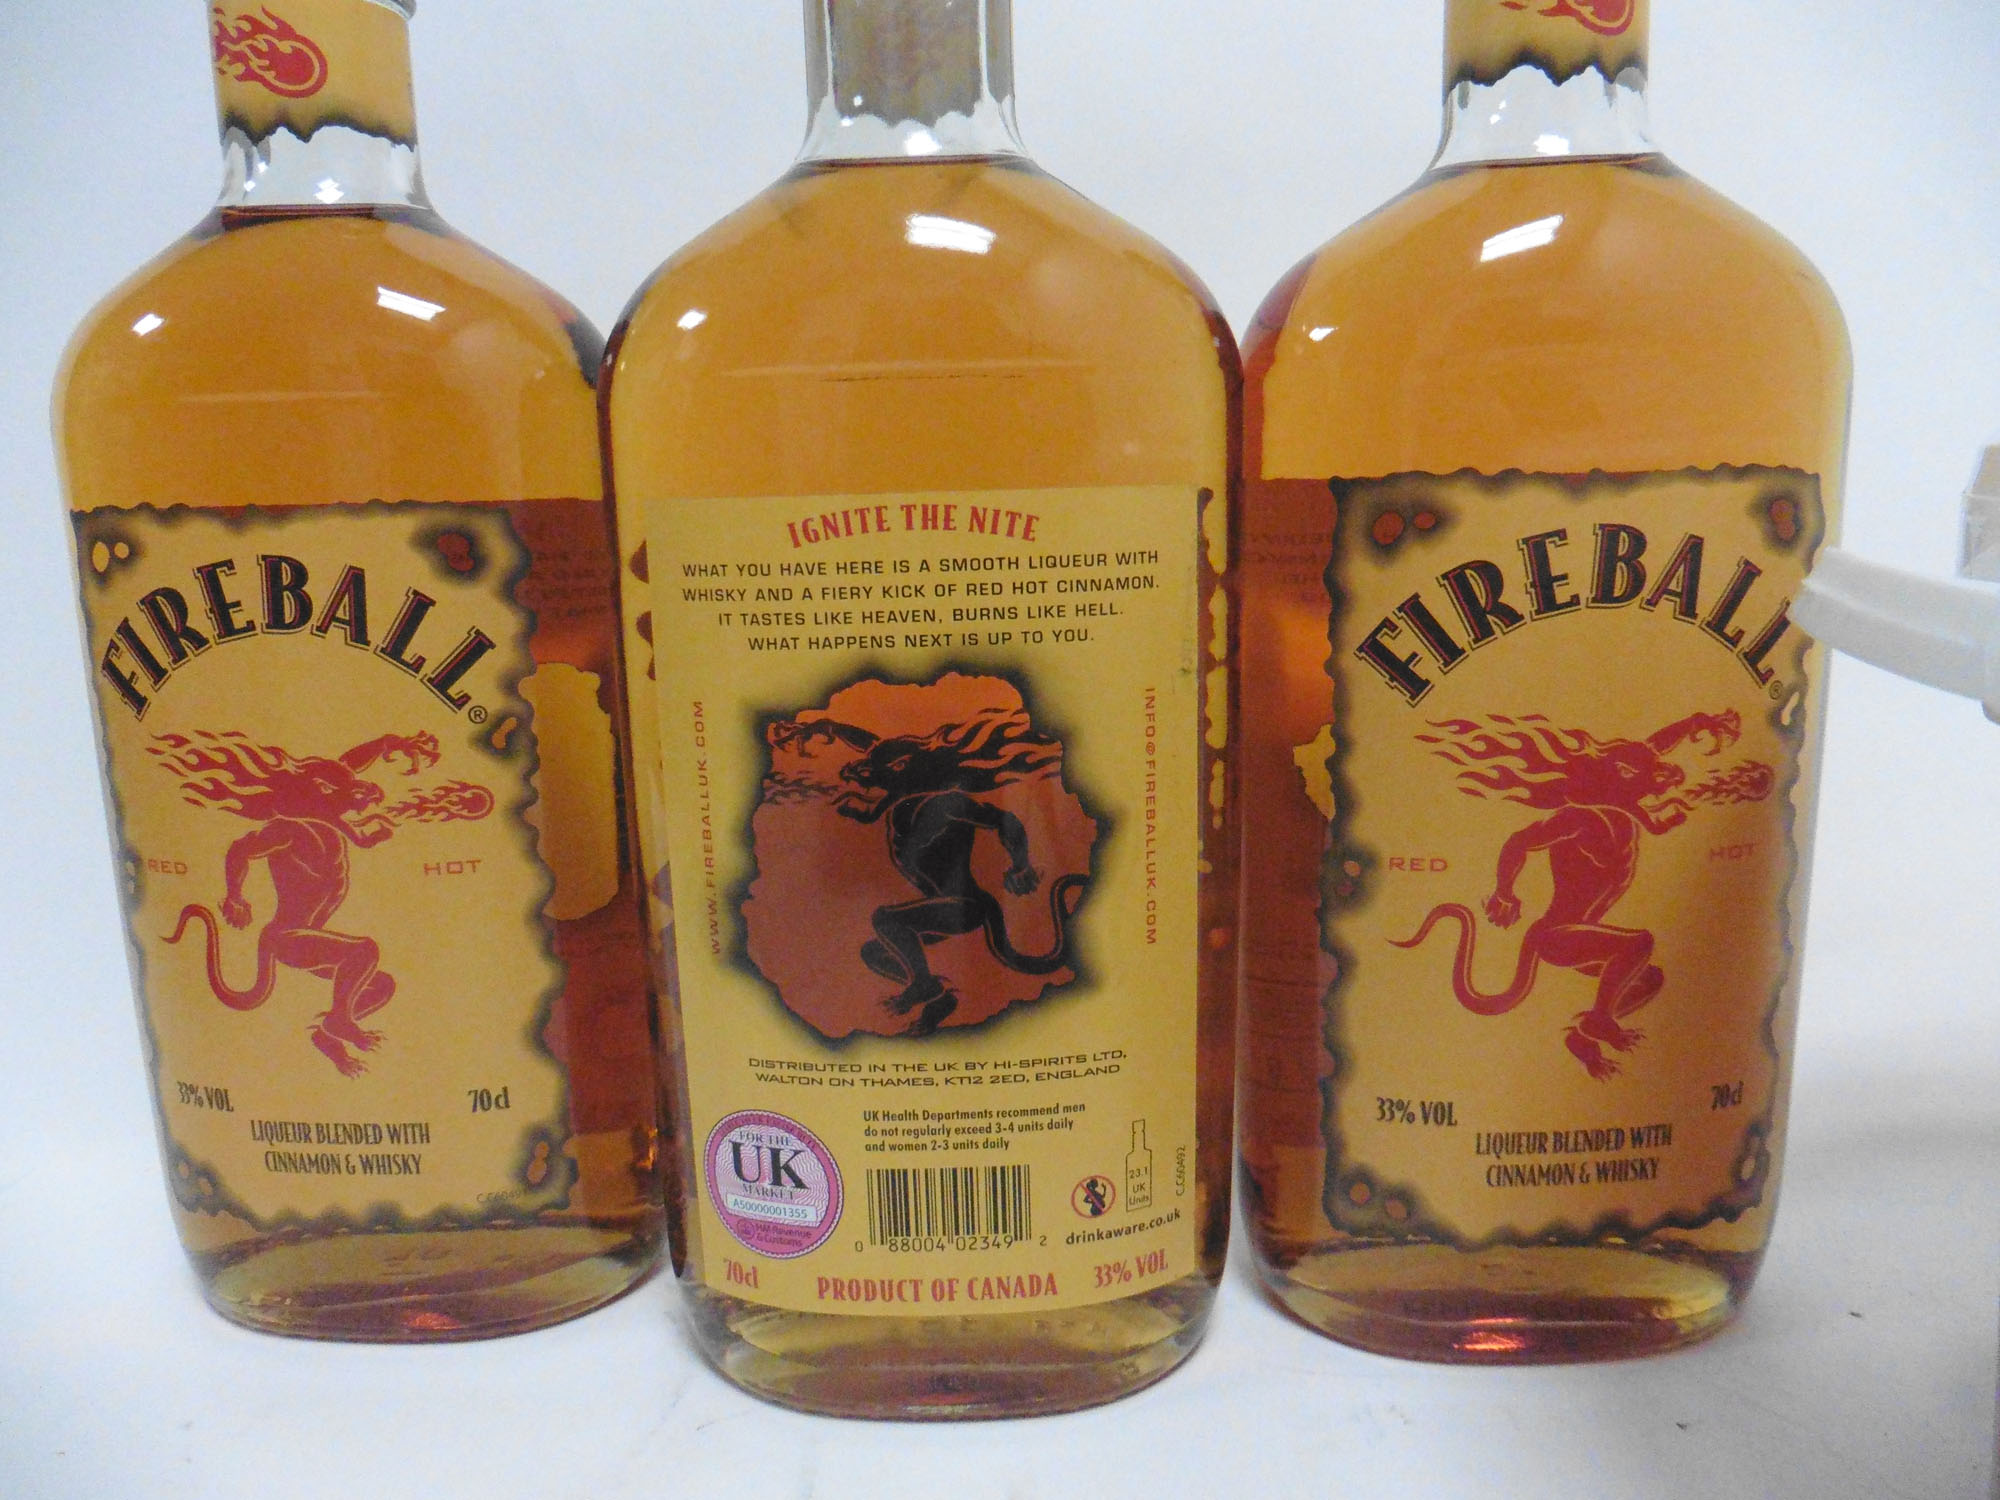 A bucket & 3 bottles of Fireball Red Hot Liqueur blended with Cinnamon & Whisky 3x 70cl 33% & Bucket - Image 3 of 3